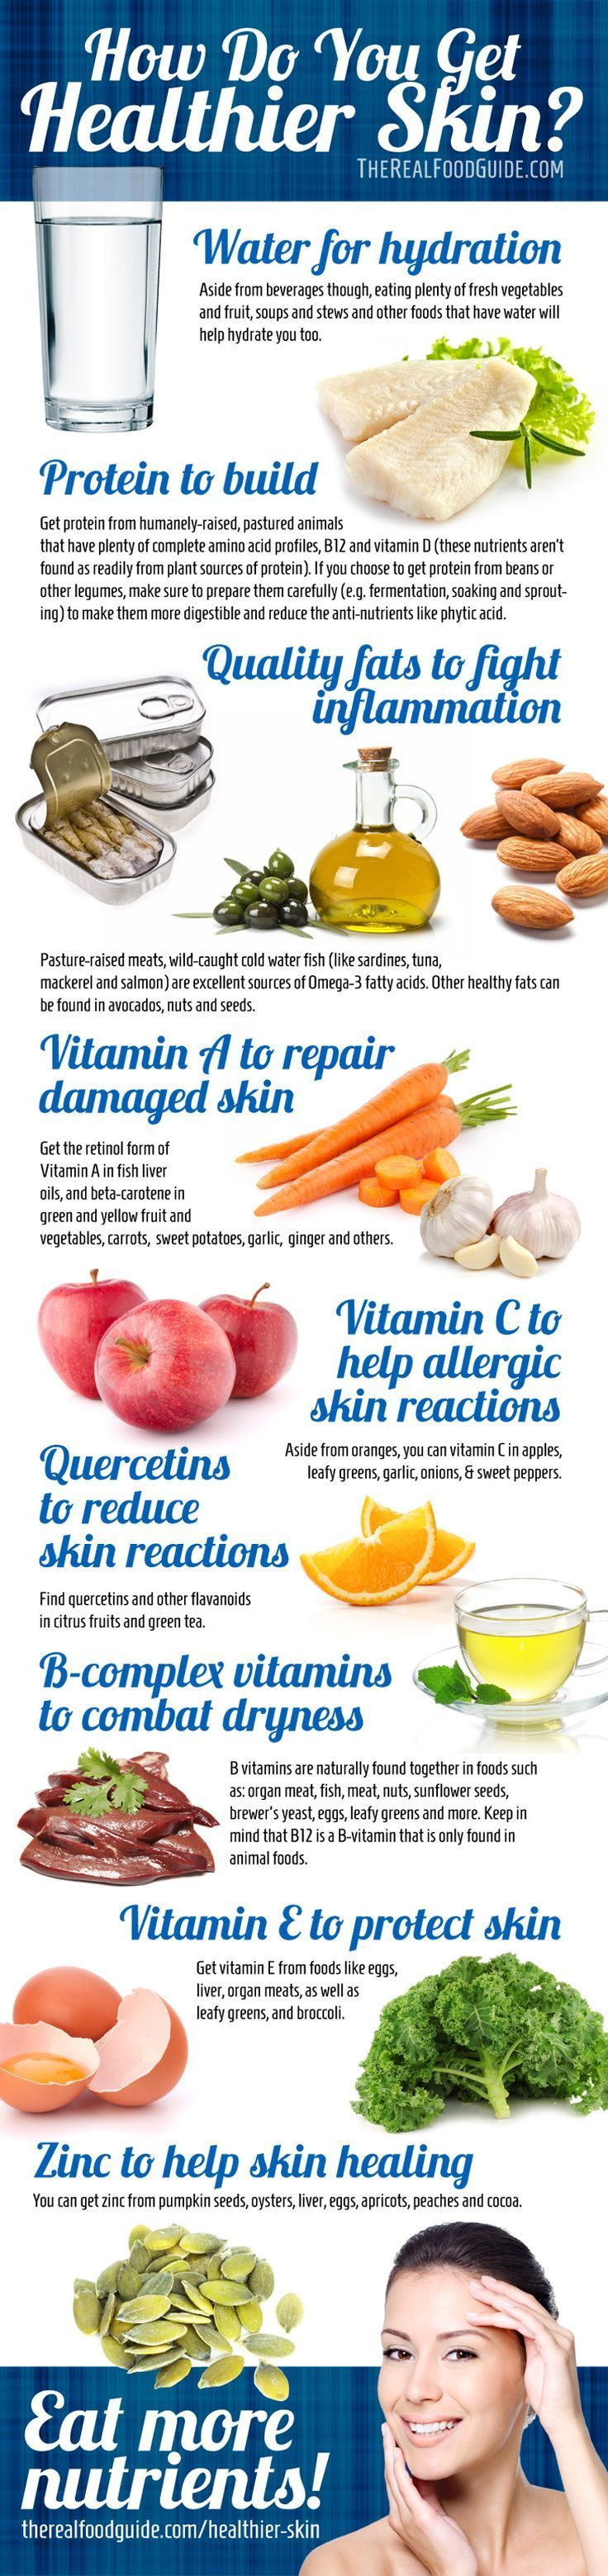 Natural Remedies for Healthy Skin #skincare #healthy #skin